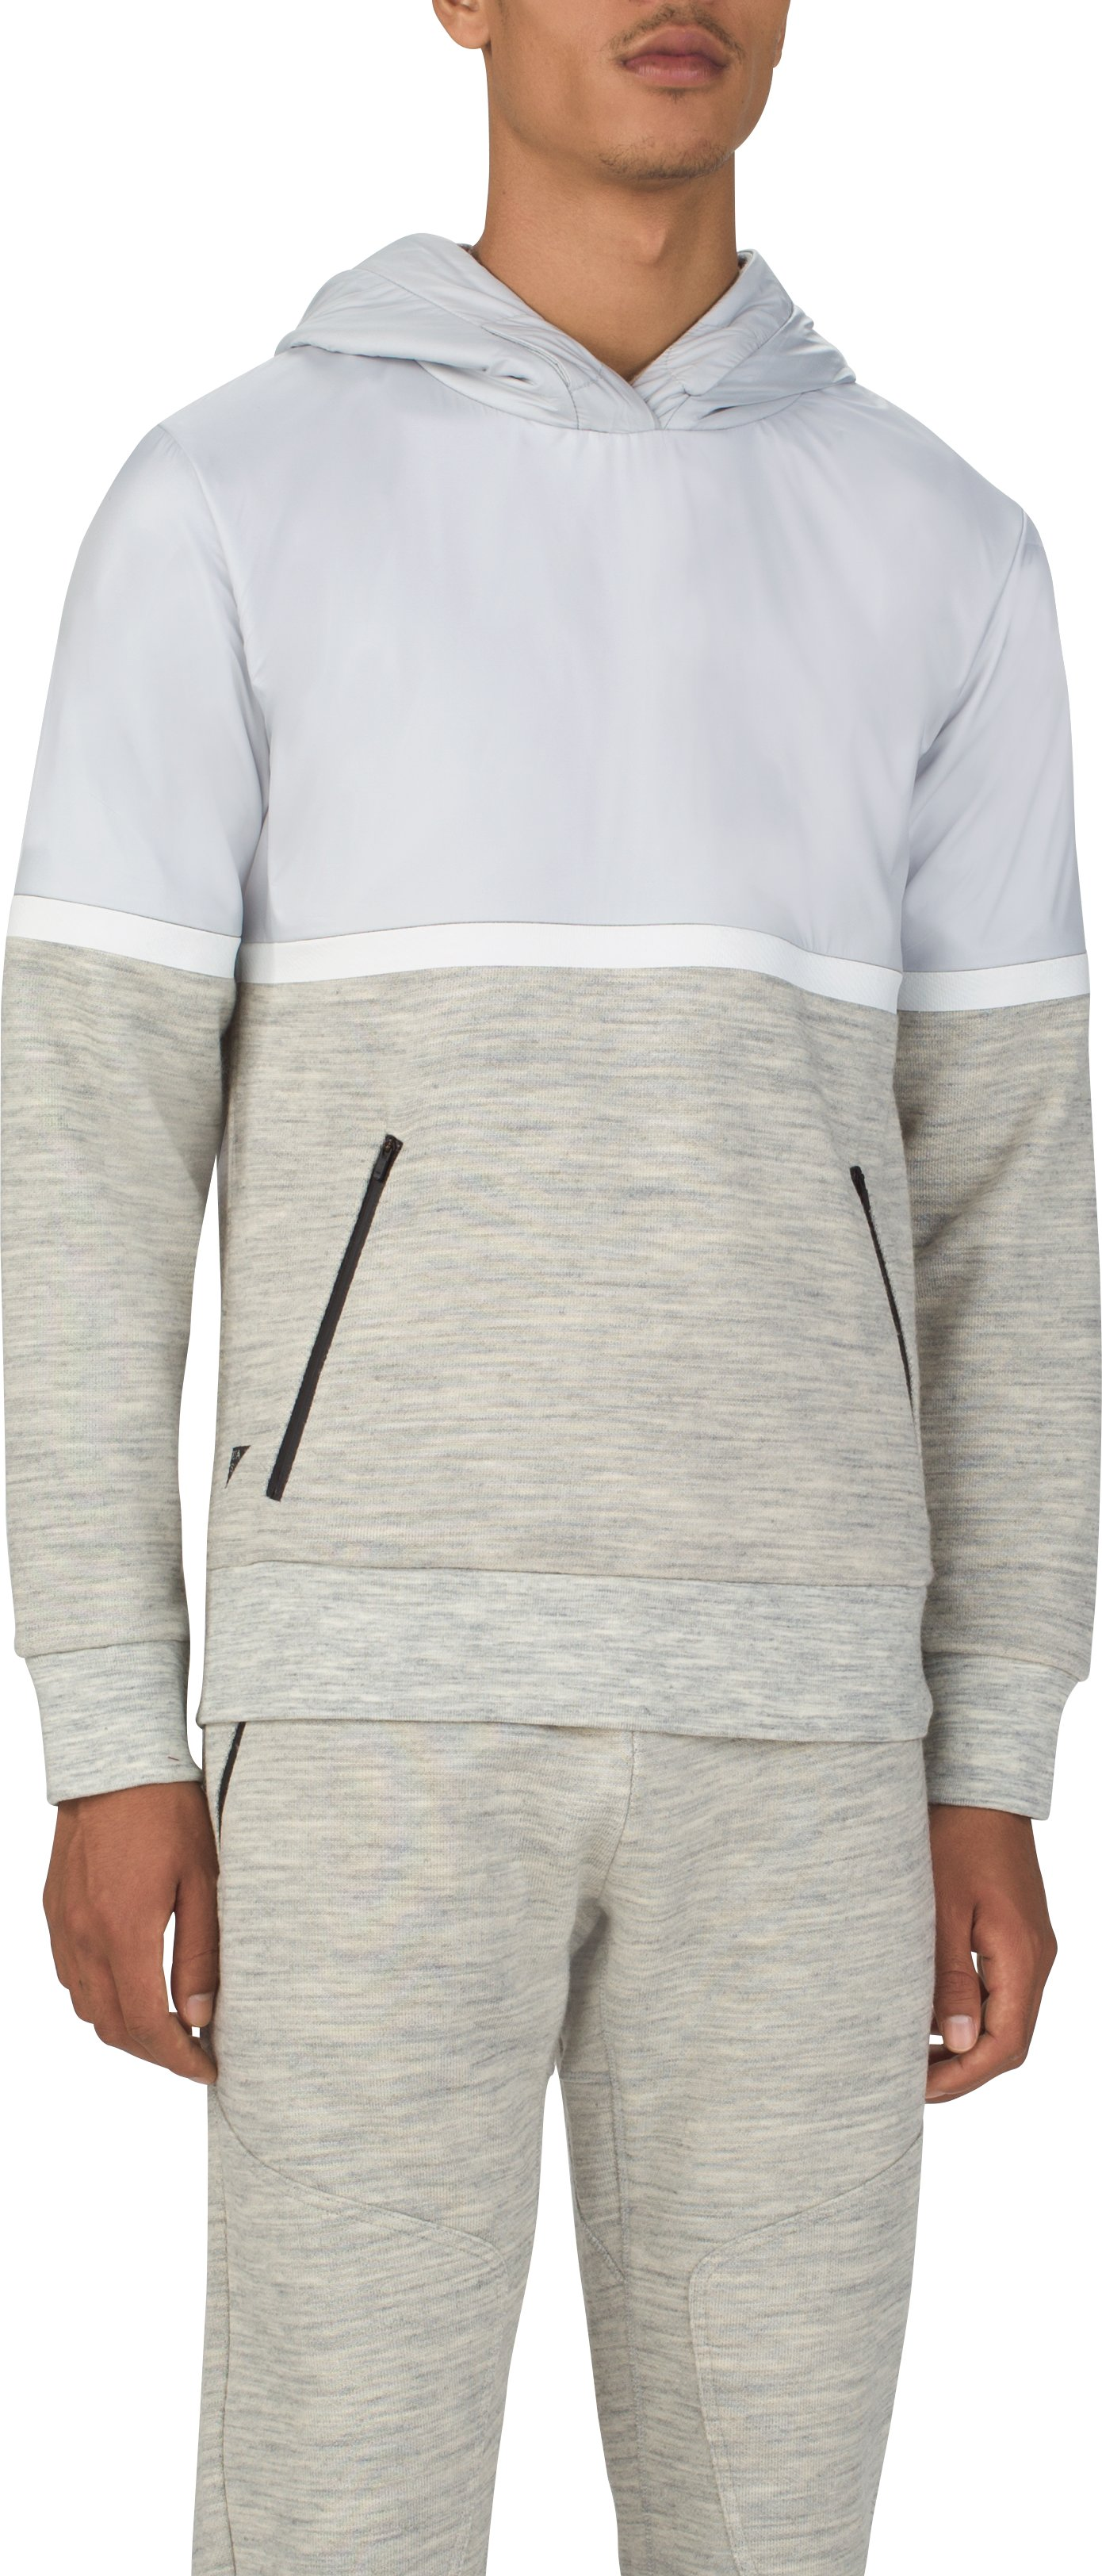 Men's UAS Pivot Terry Hoodie, Light Gray